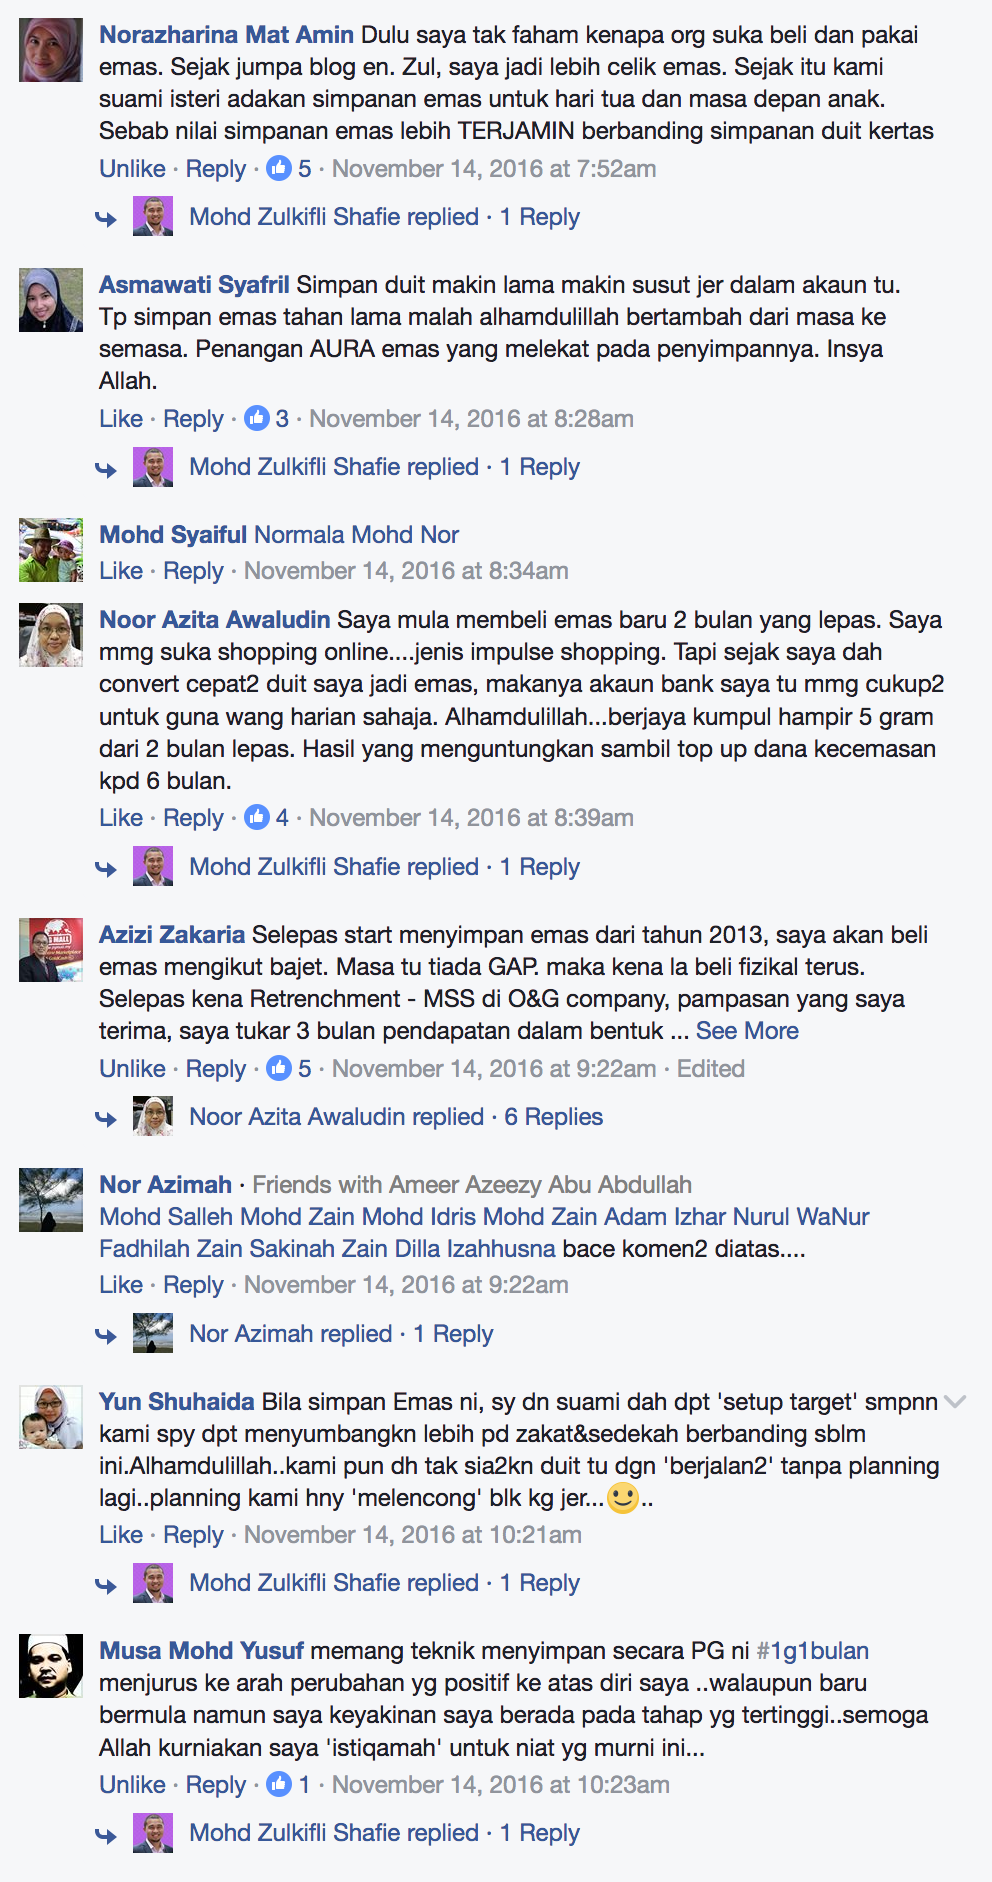 FB Screen Shot testimoni penyimpan emas 4